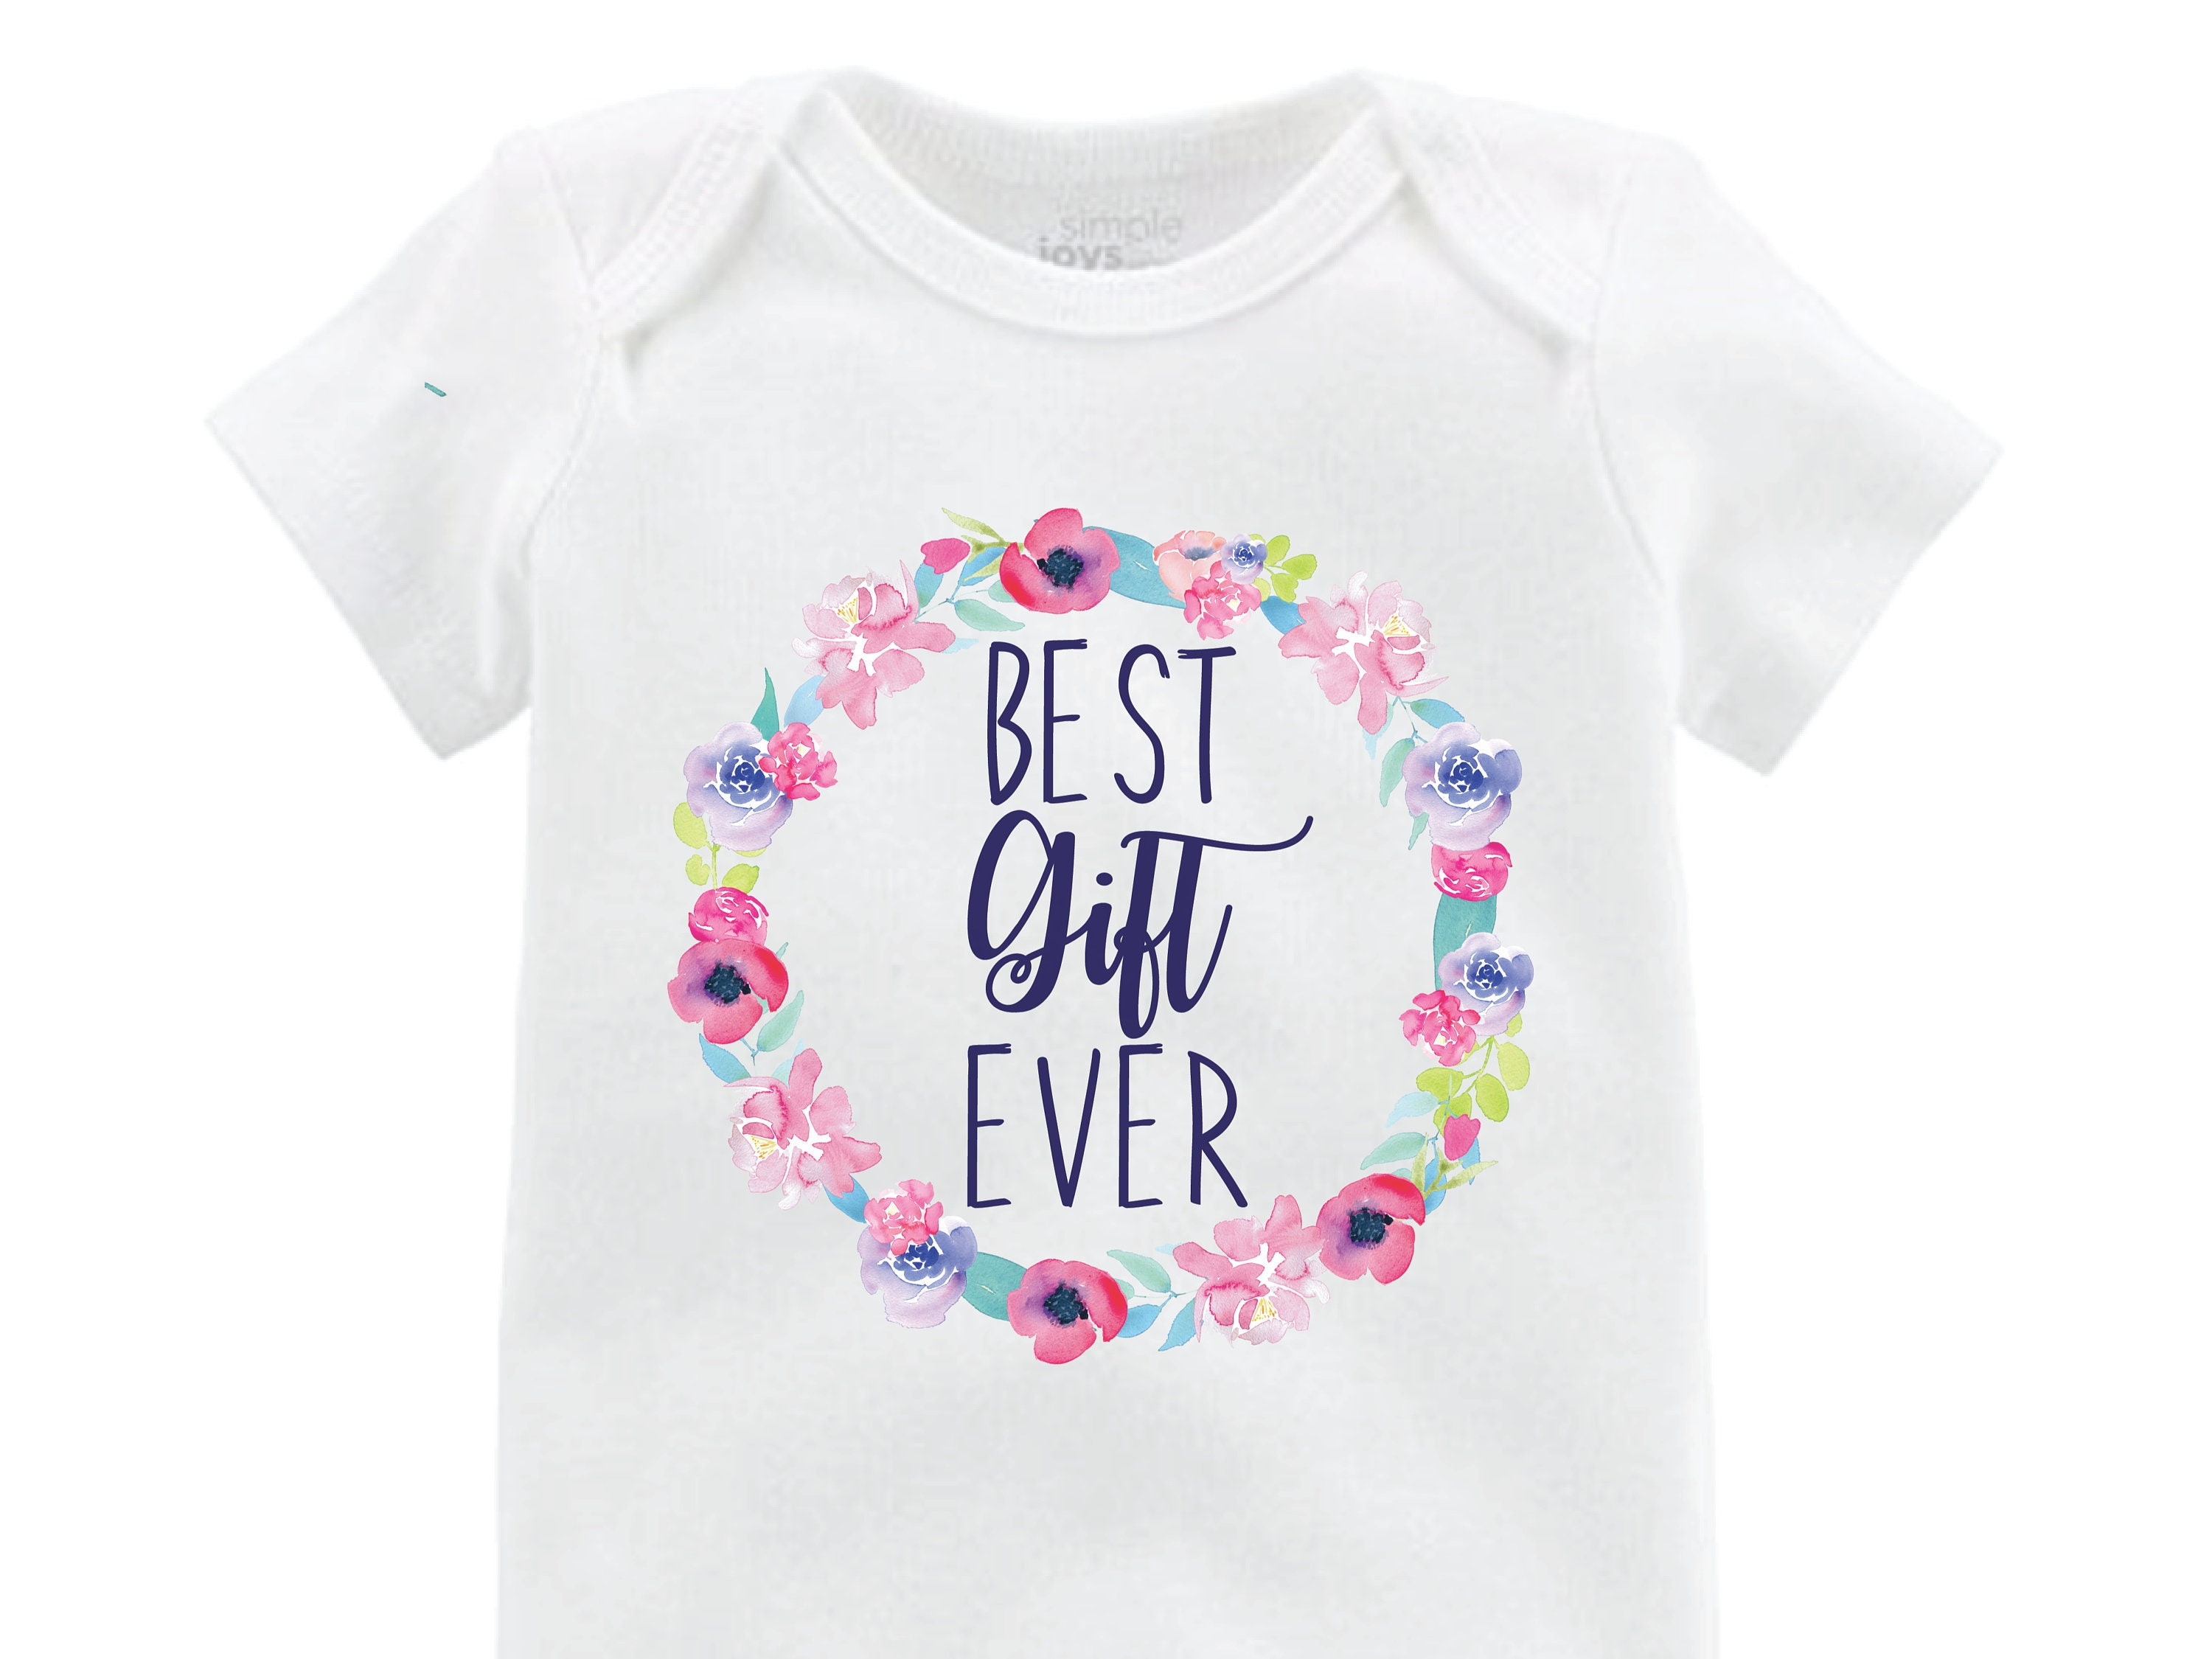 211d6c3a5 Best Gift Ever Girl Coming Home Outfit Onesie Infertility Onesie Infant  Watercolor Floral Yoga Leggings Top Knot Hat Headband Blessing